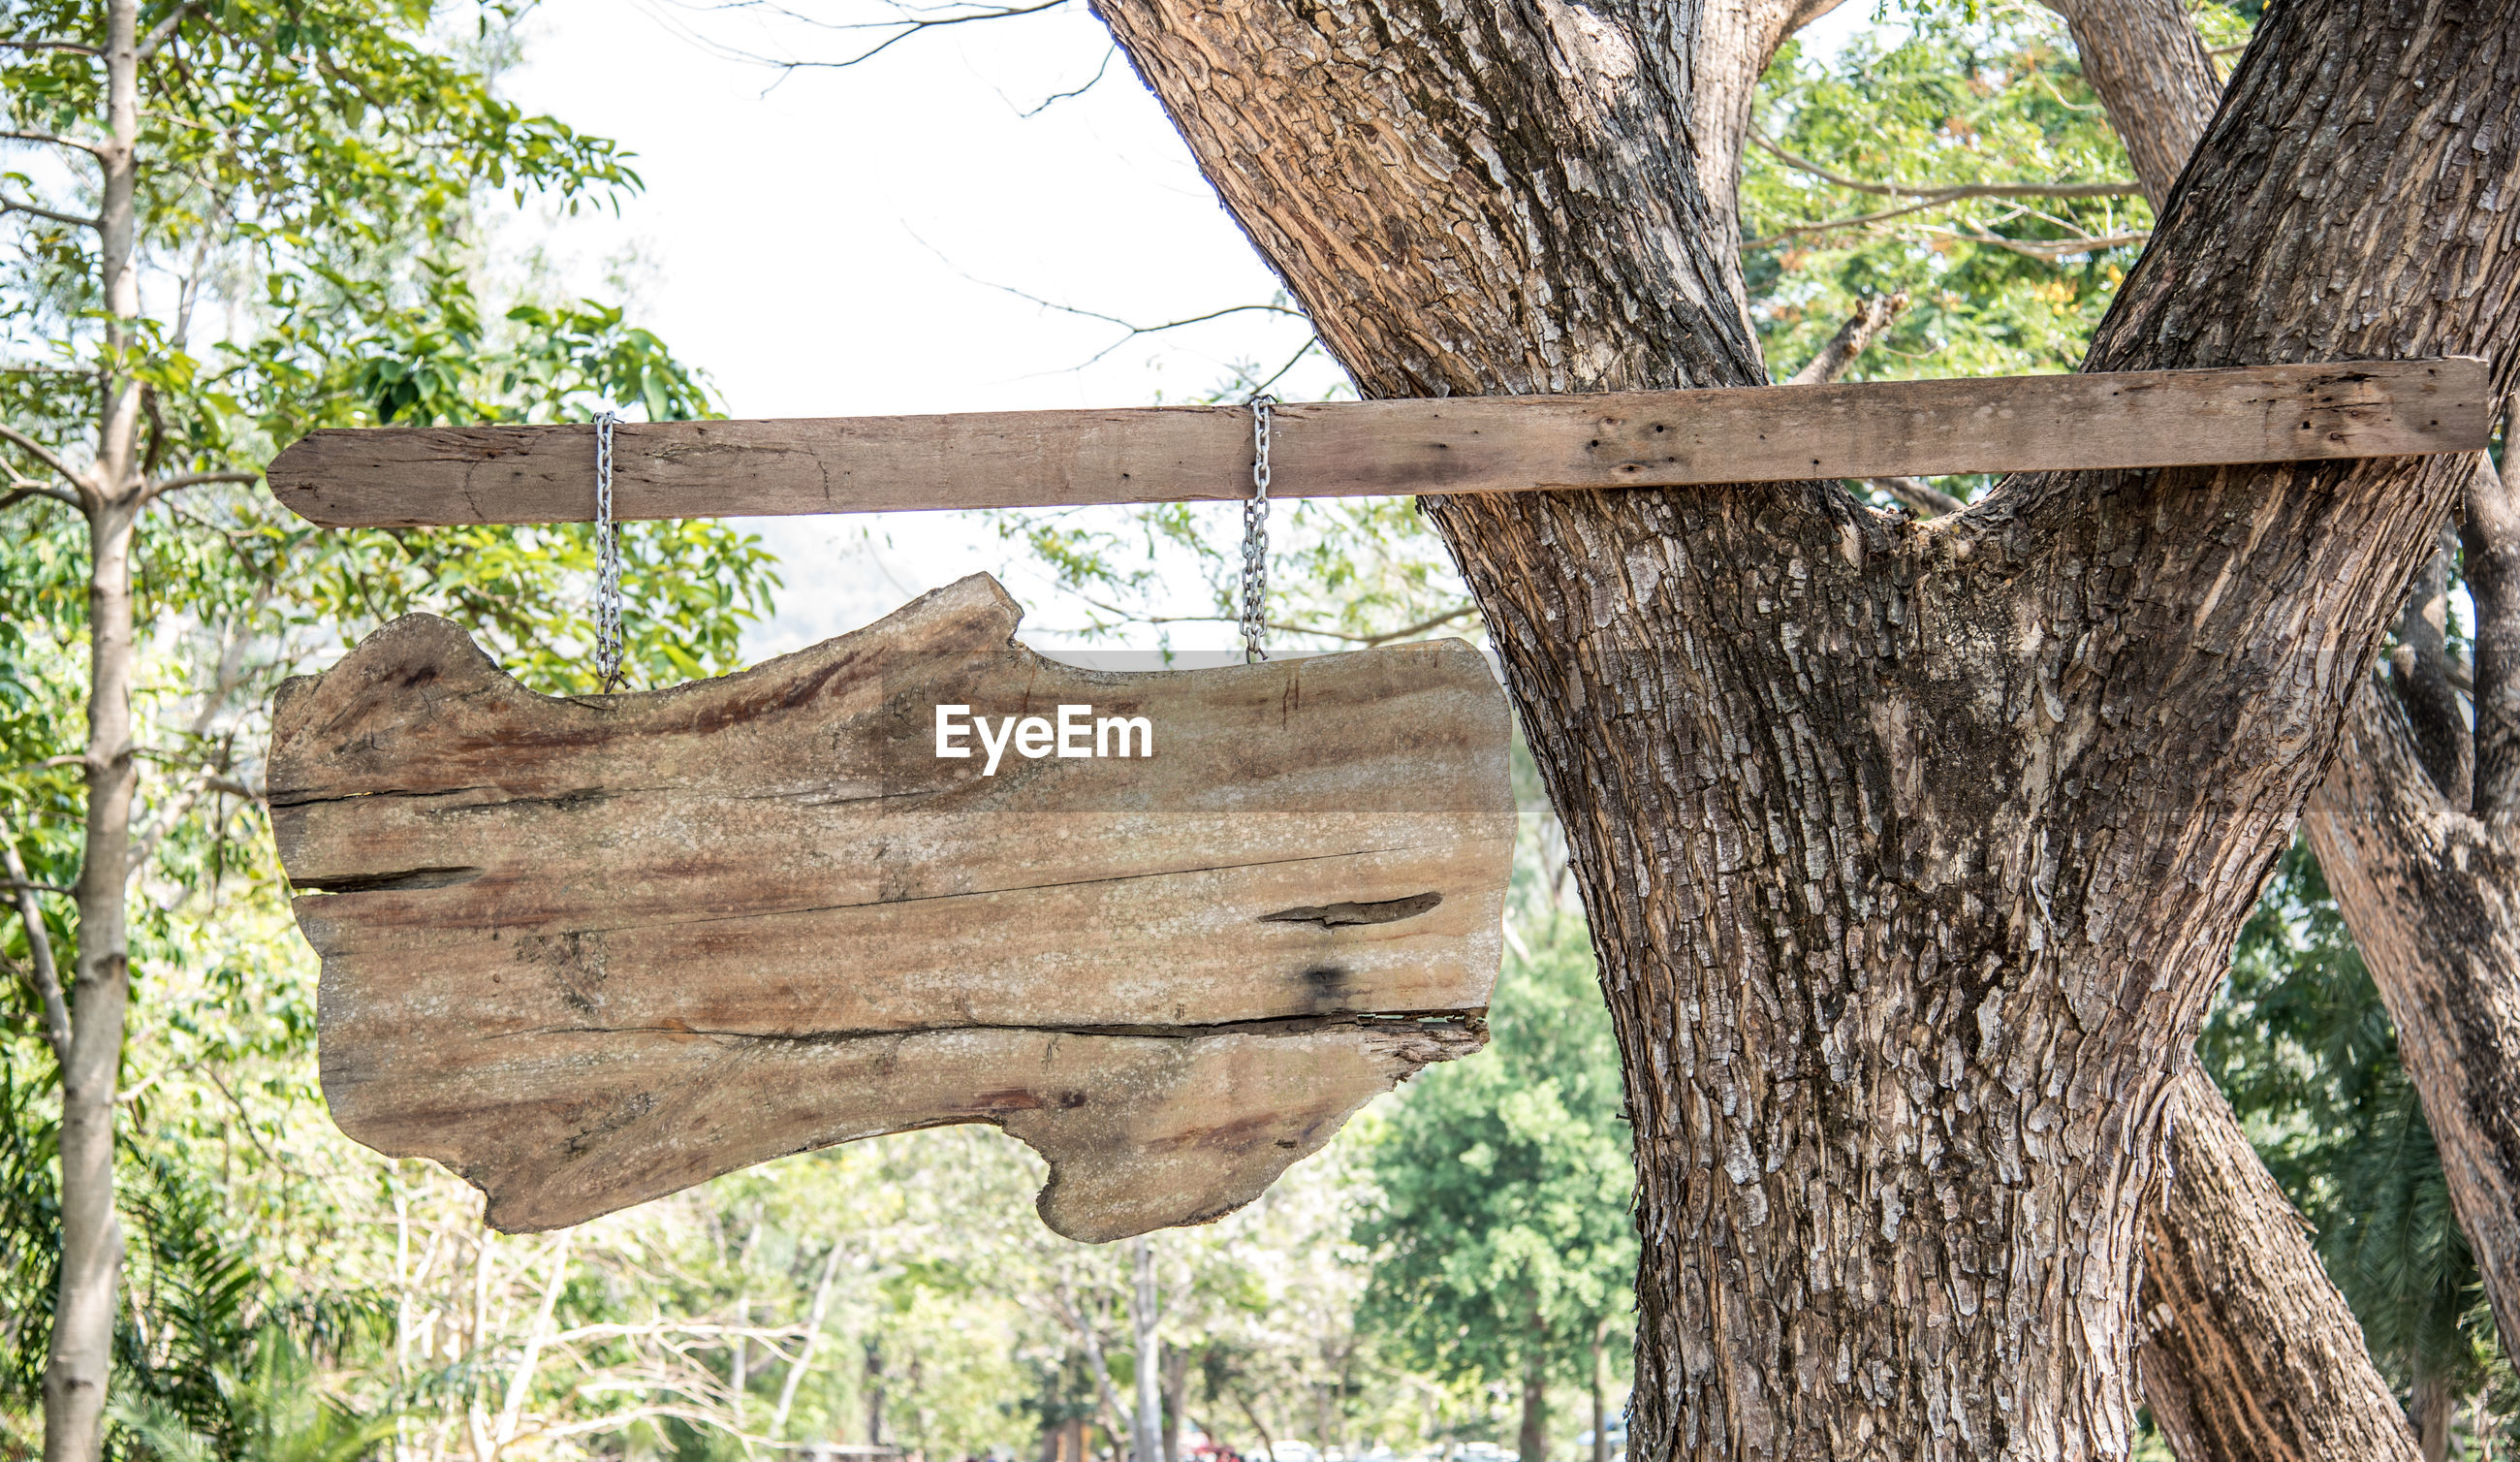 Close-up of blank wooden signboard hanging from tree trunk in forest